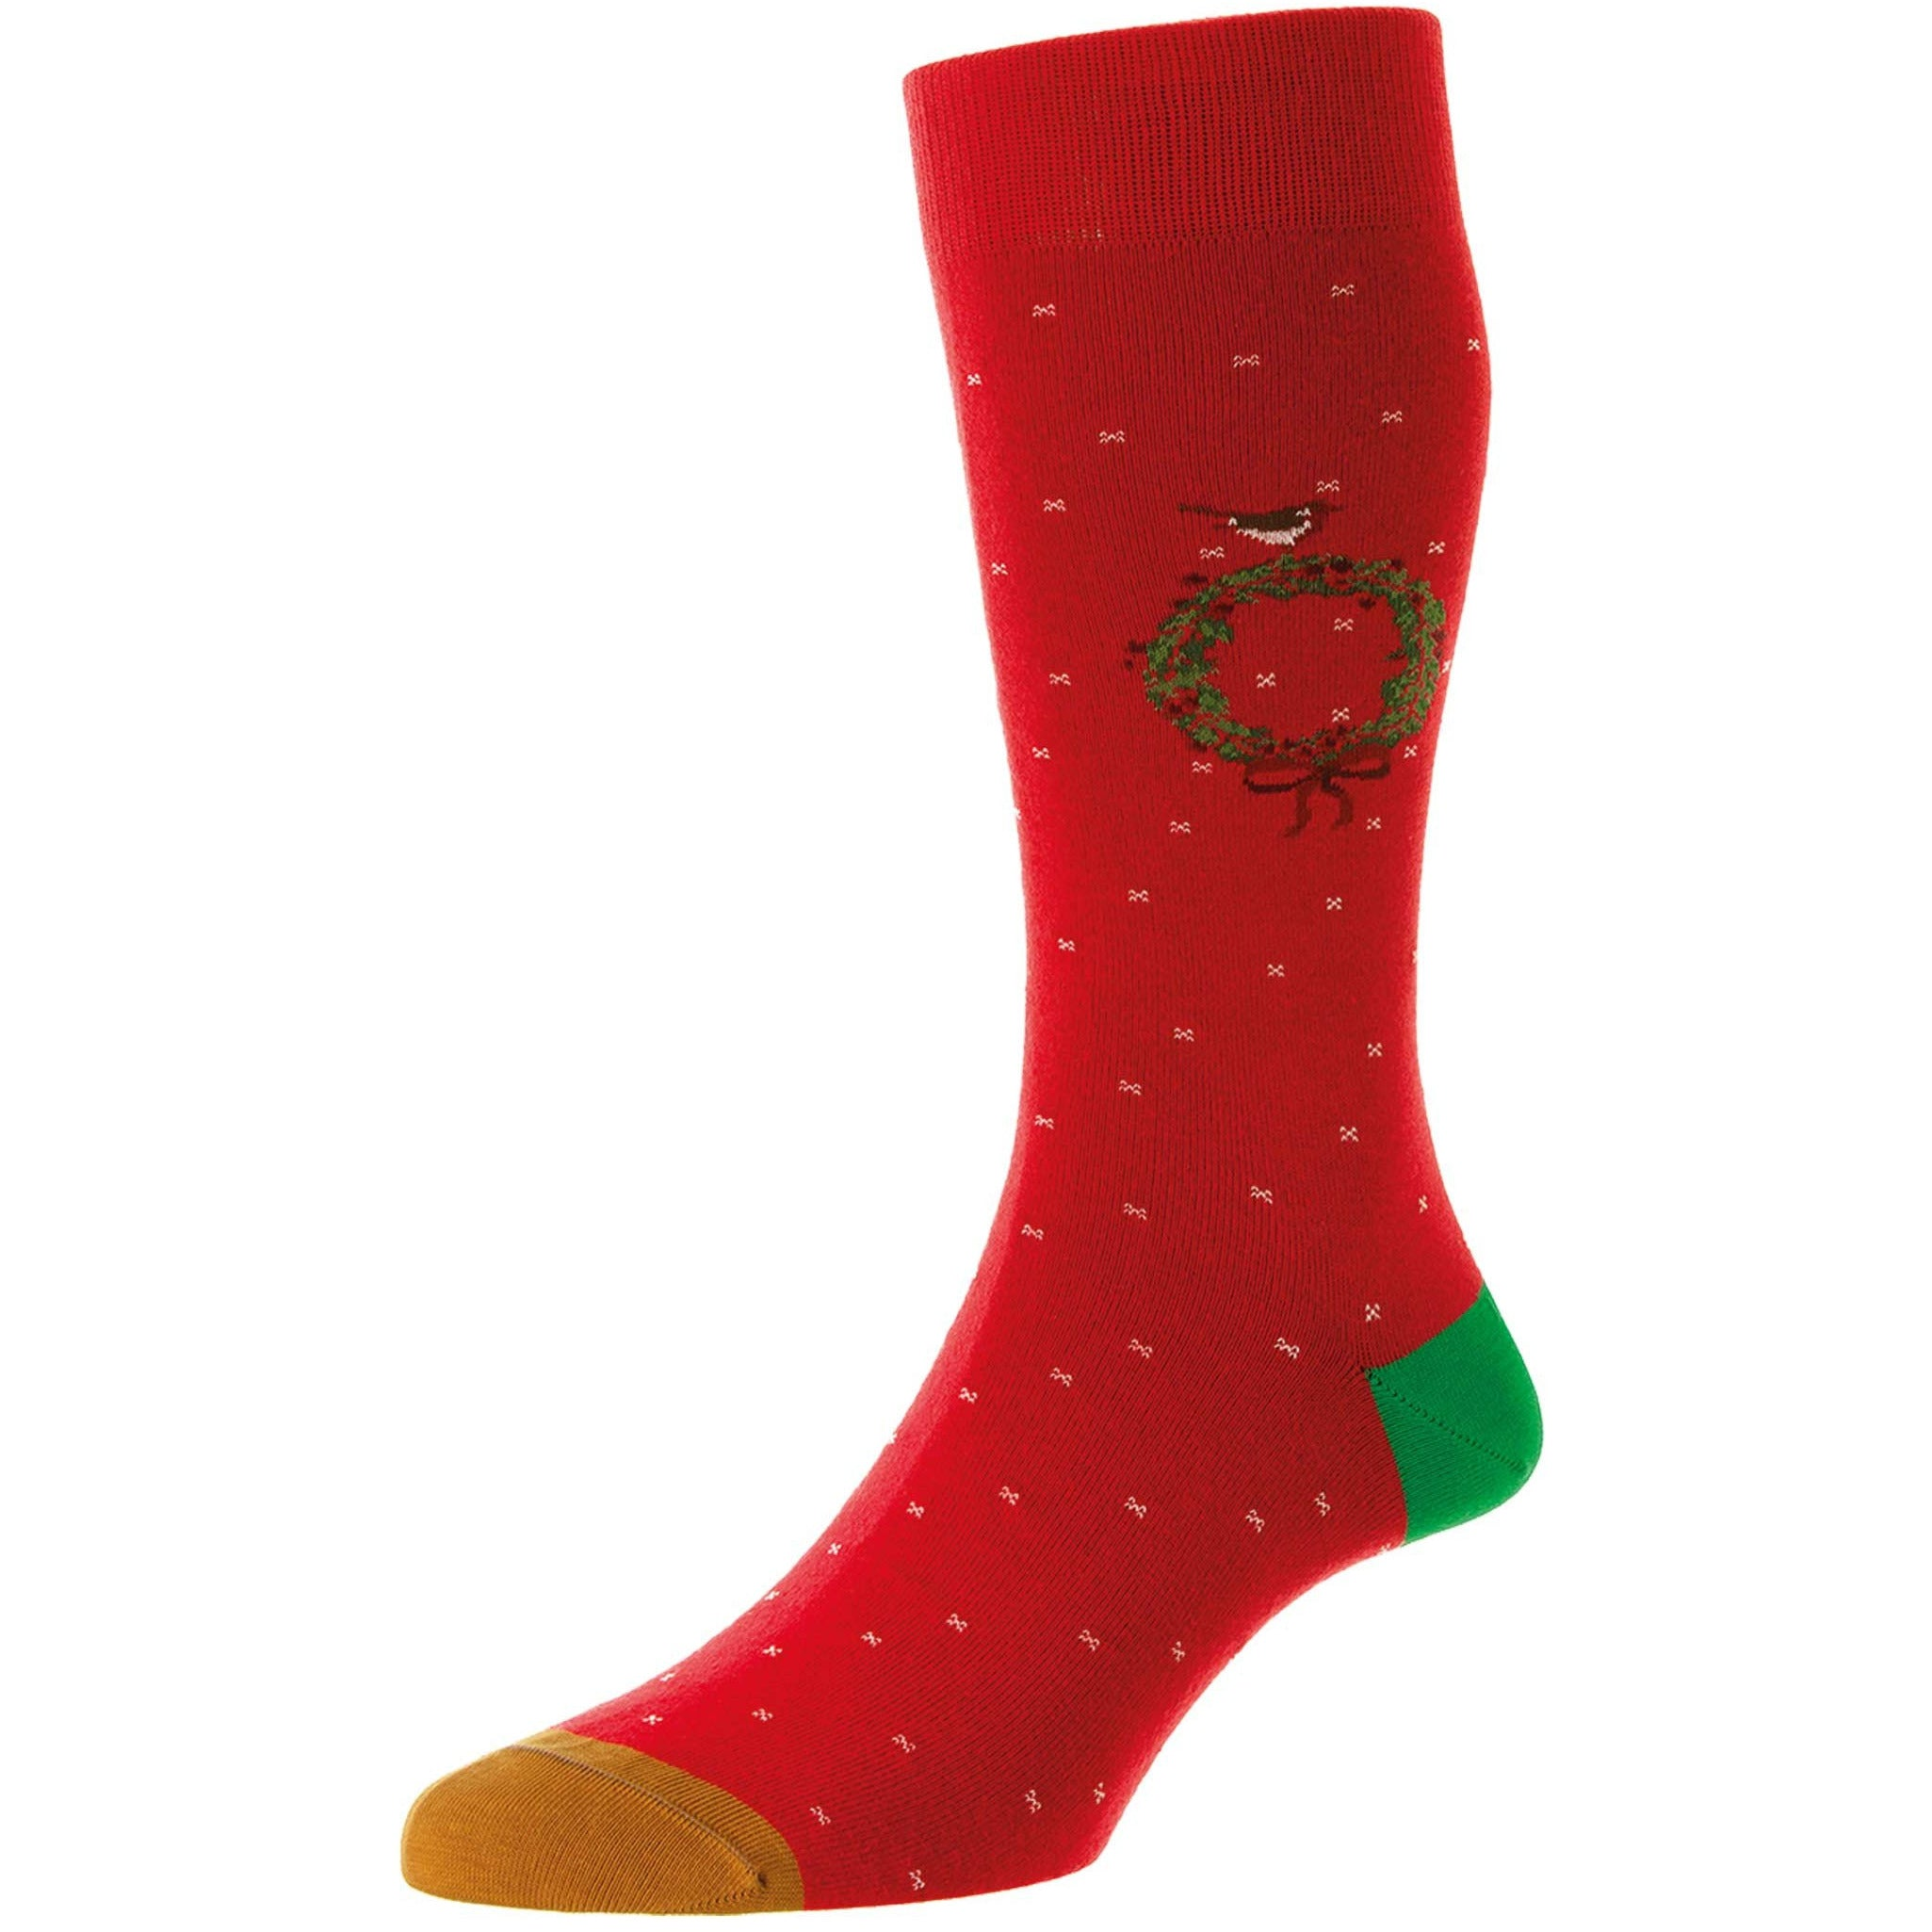 Westgrove Christmas Wreath Motif Cotton Socks